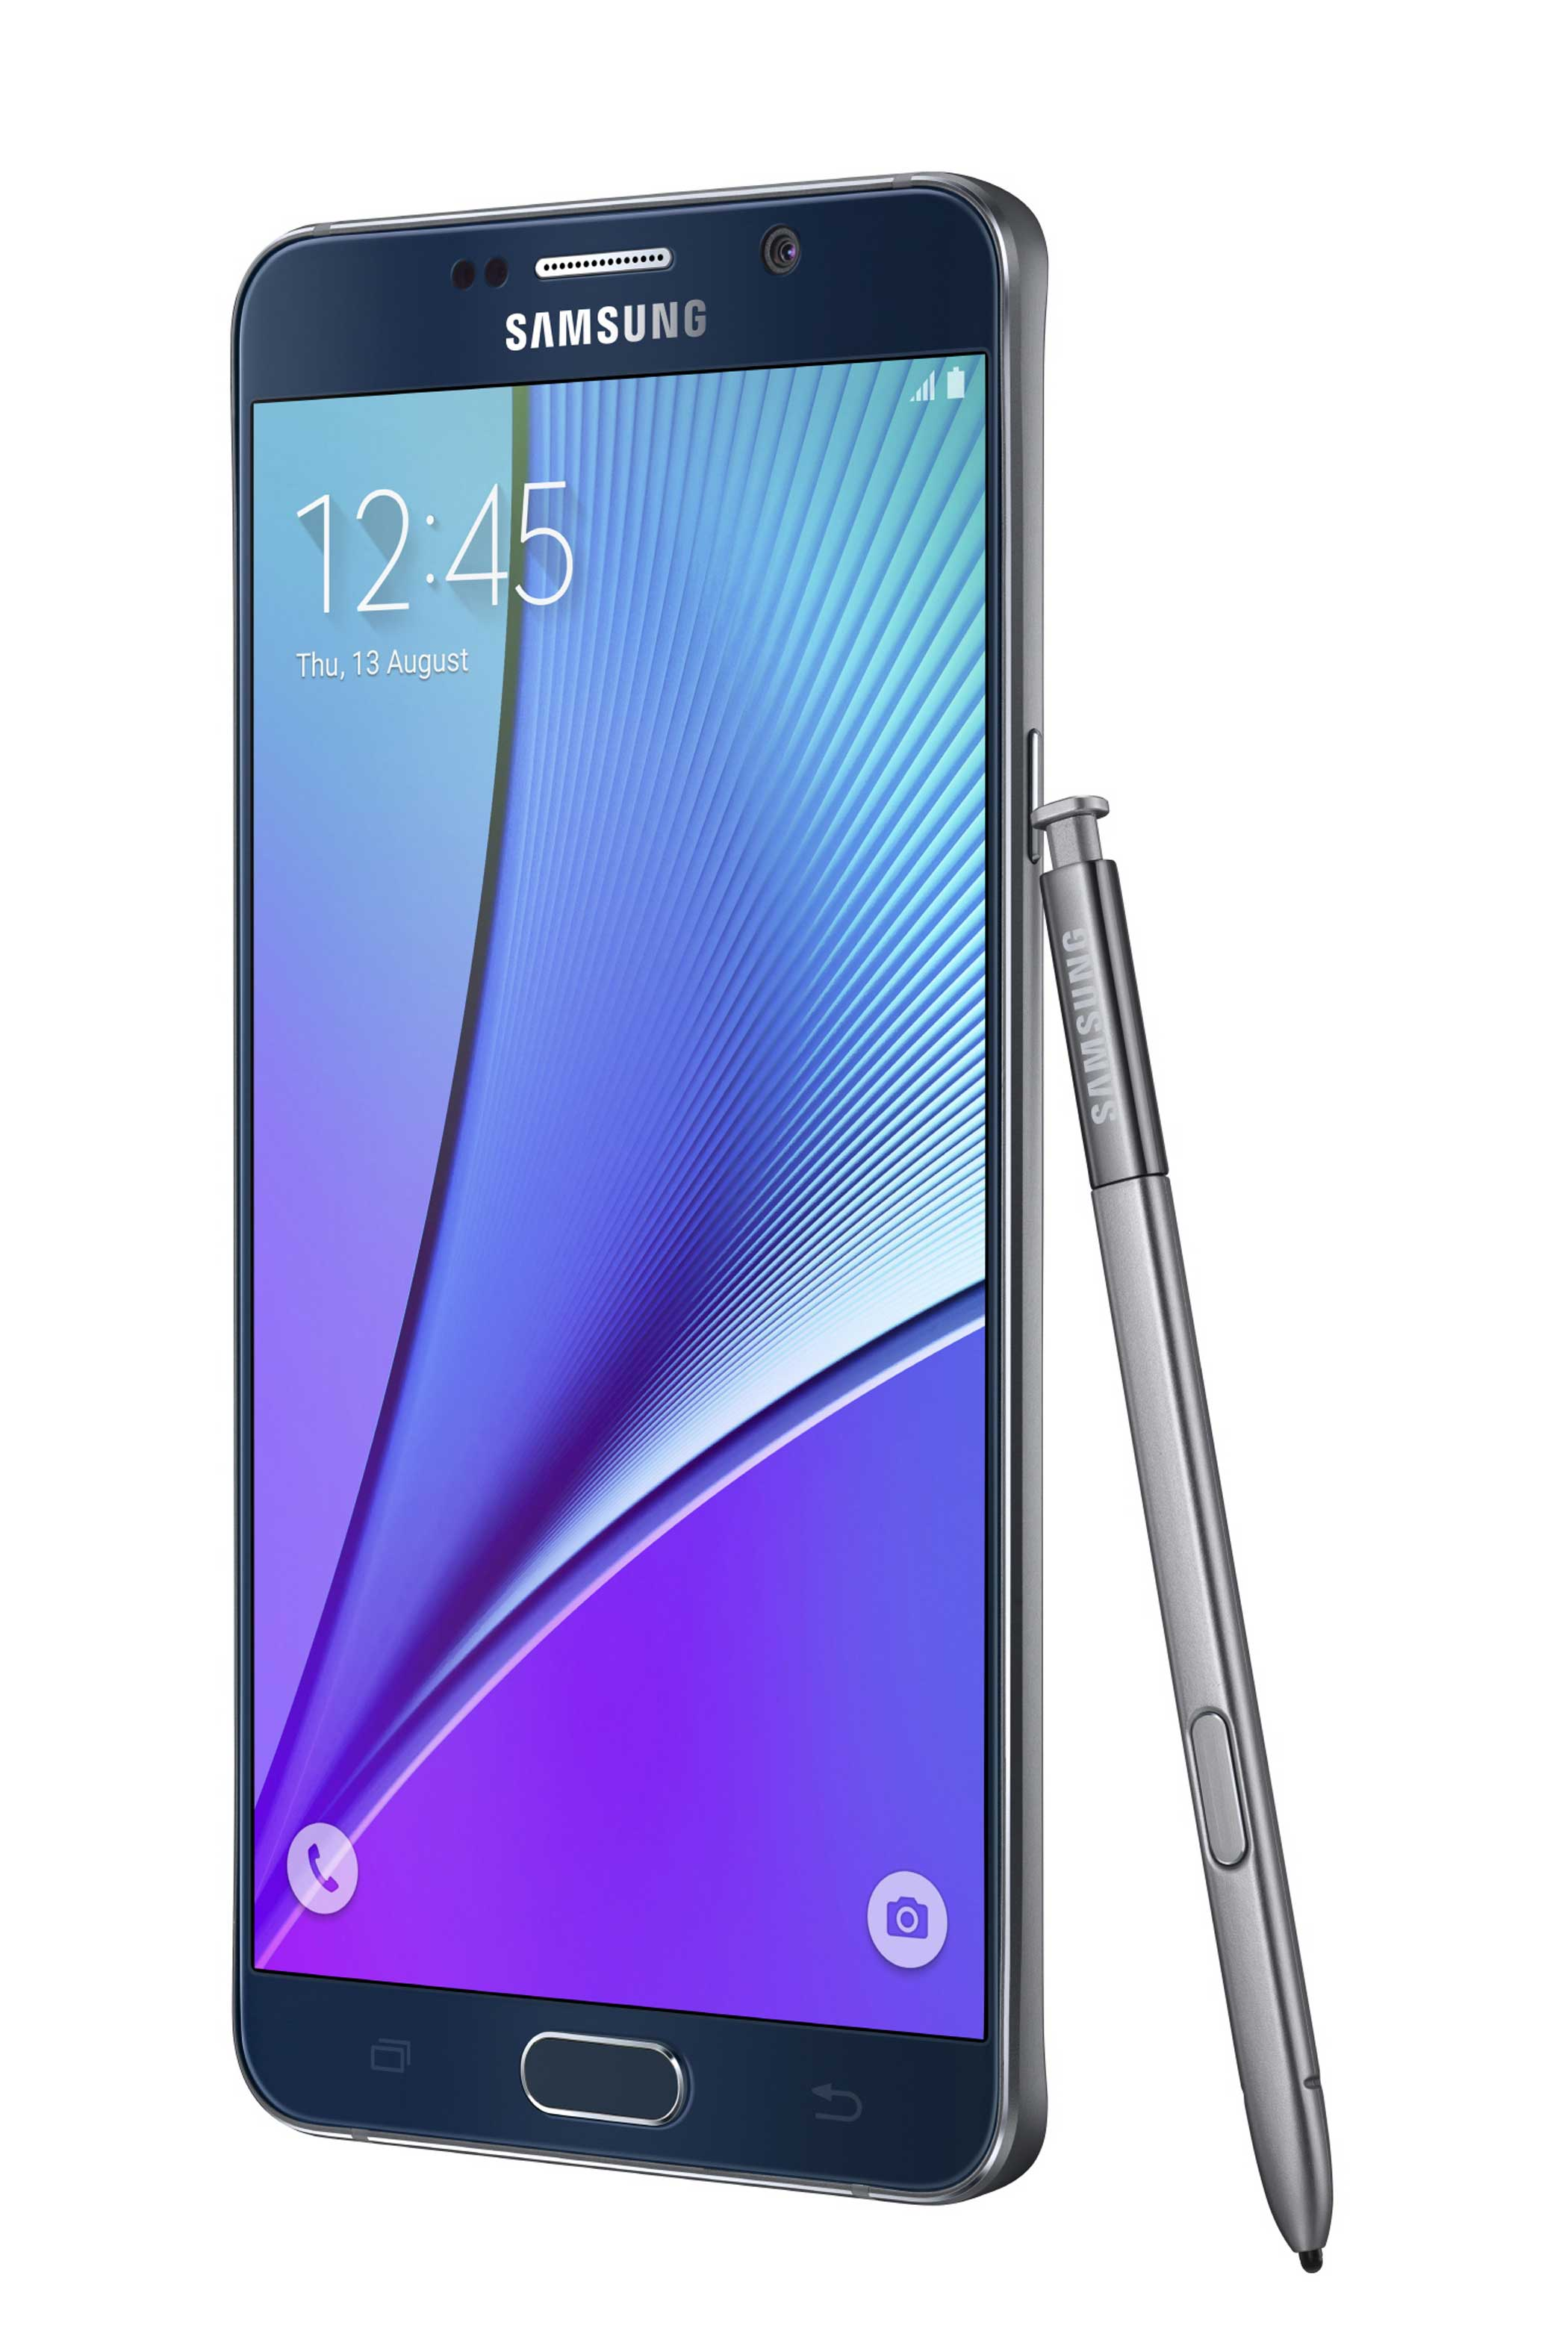 <b>Galaxy Note5</b>: The new Note 5 has a smaller frame than the Note4 while maintaing the same screen size. Owners can also use the Note's signature pen to write on the screen without unlocking the device.